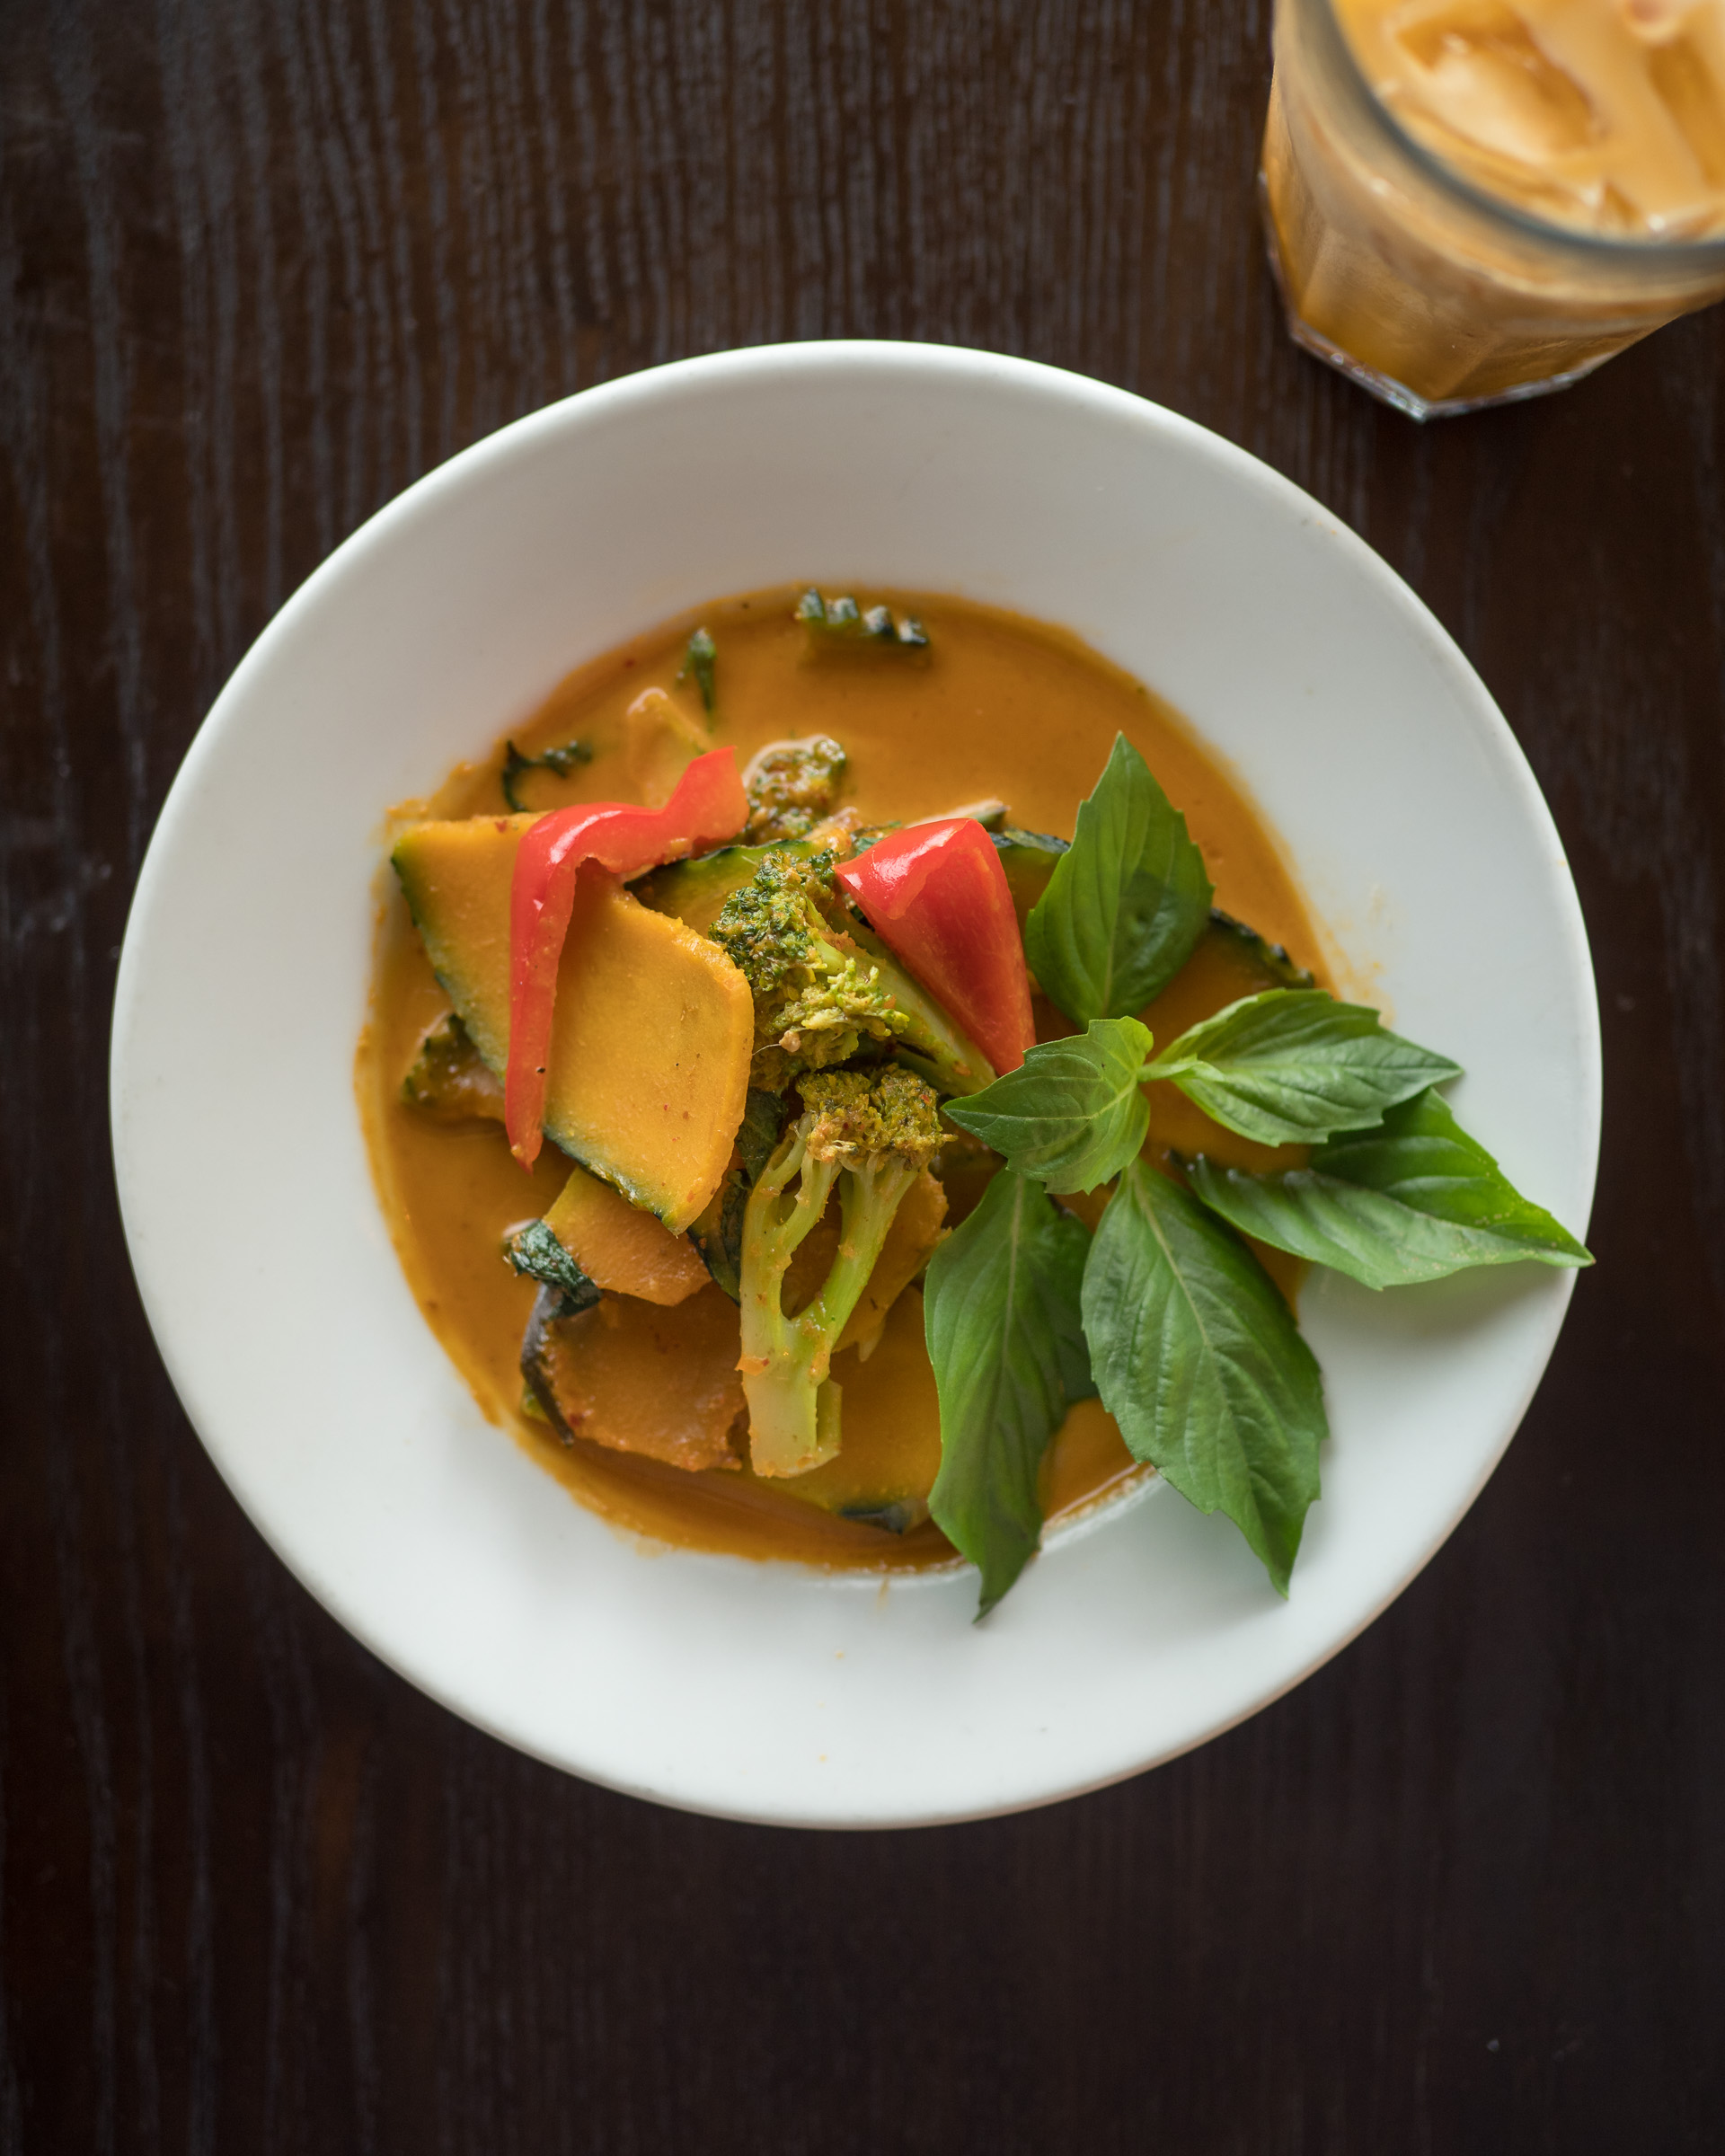 fare photo portland oregon food photographer photography jeremy pawlowski texas austin amarillo classic thai cuisine curry